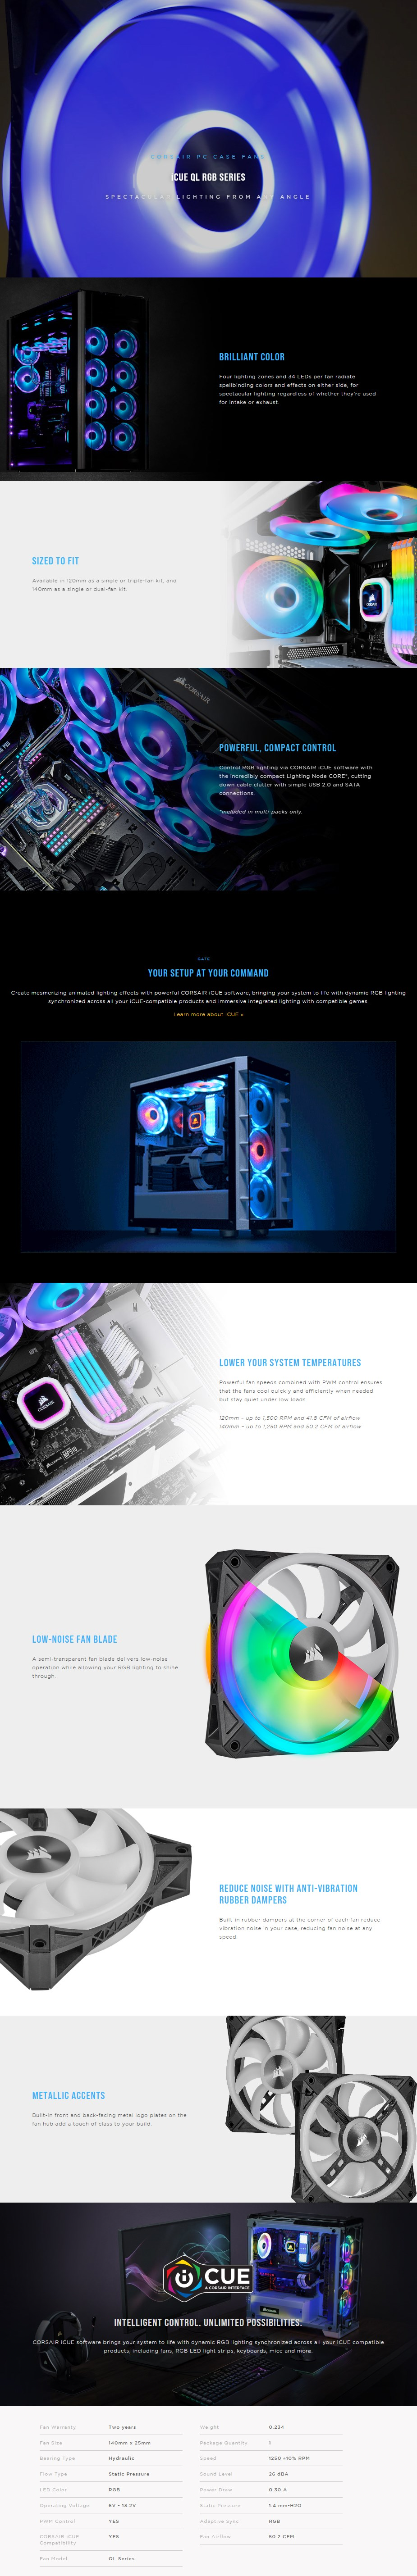 Corsair iCUE QL140 RGB 140mm PWM Fan - Dual Pack with Lighting Node CORE - Overview 1